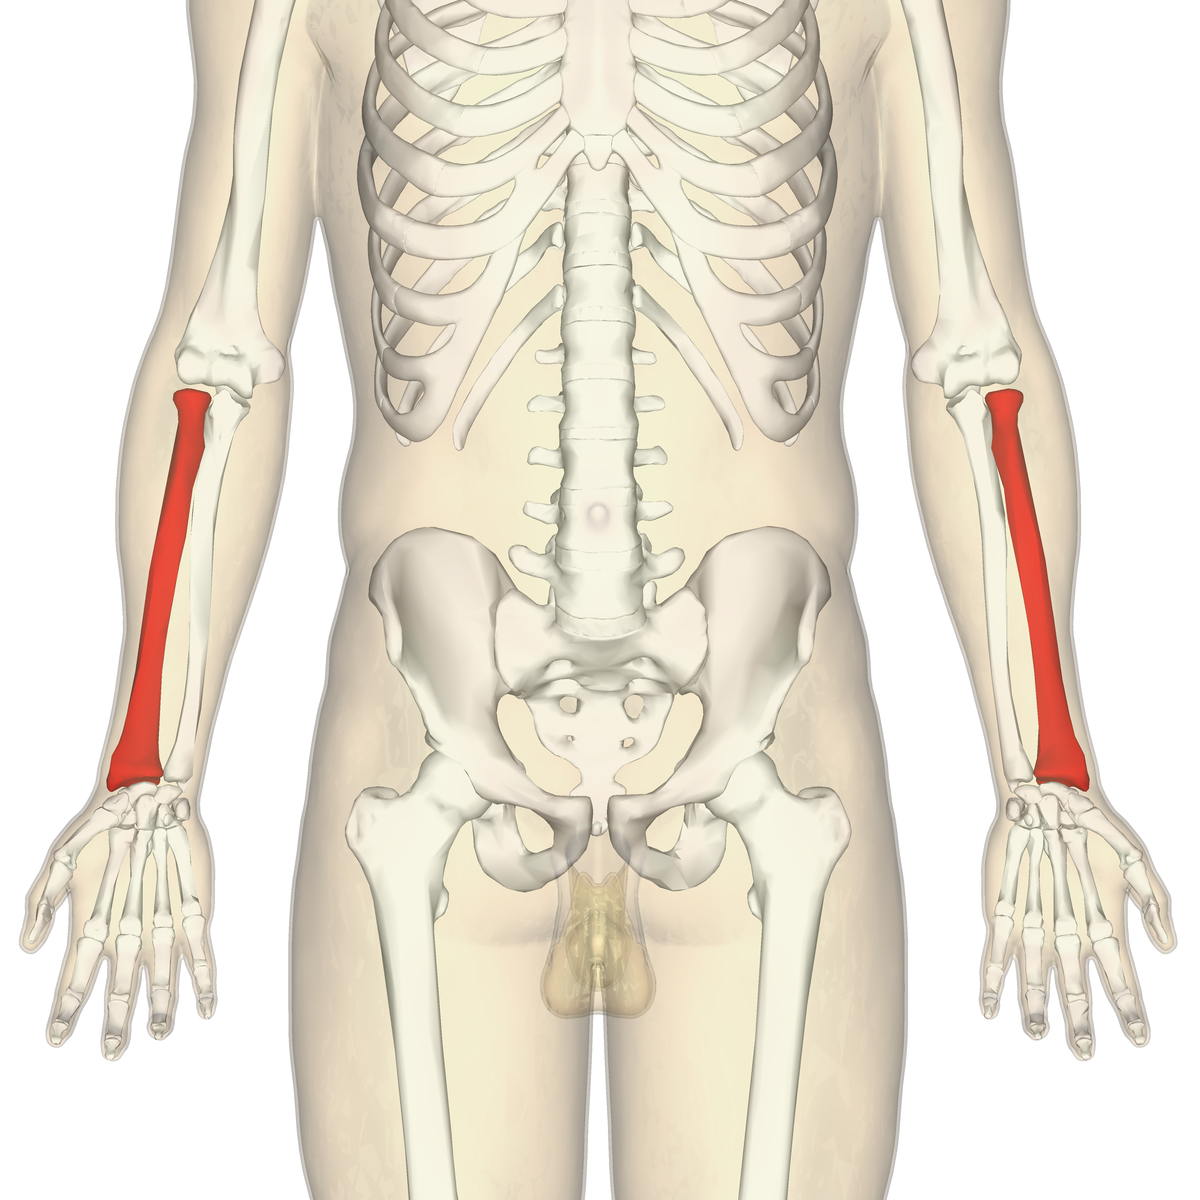 Radius (bone) - Wikipedia Ulna Bone